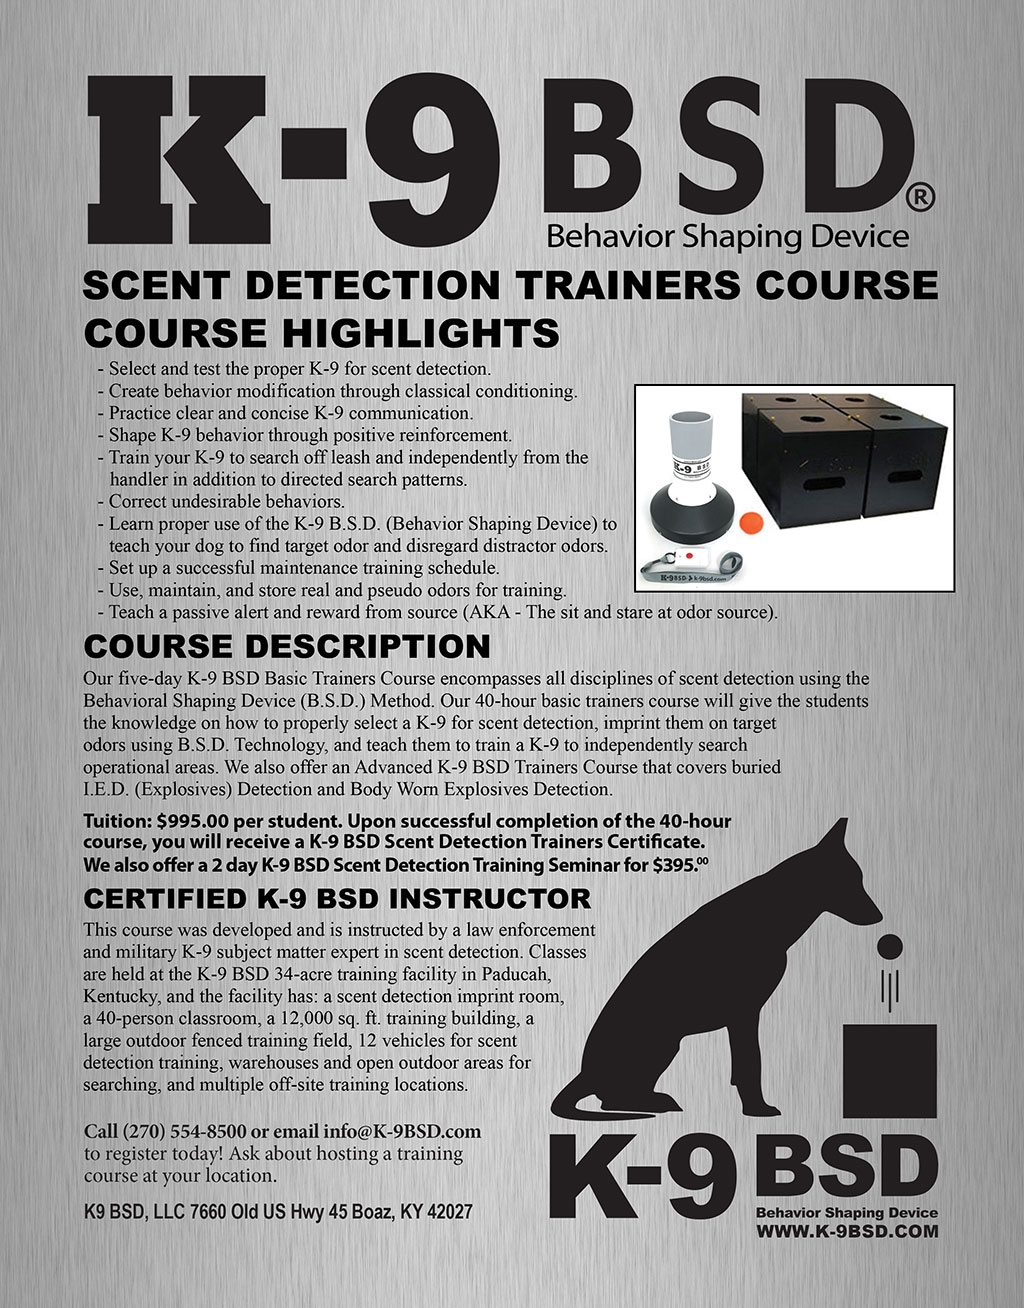 K-9 BSD Scent Detection Trainers Course